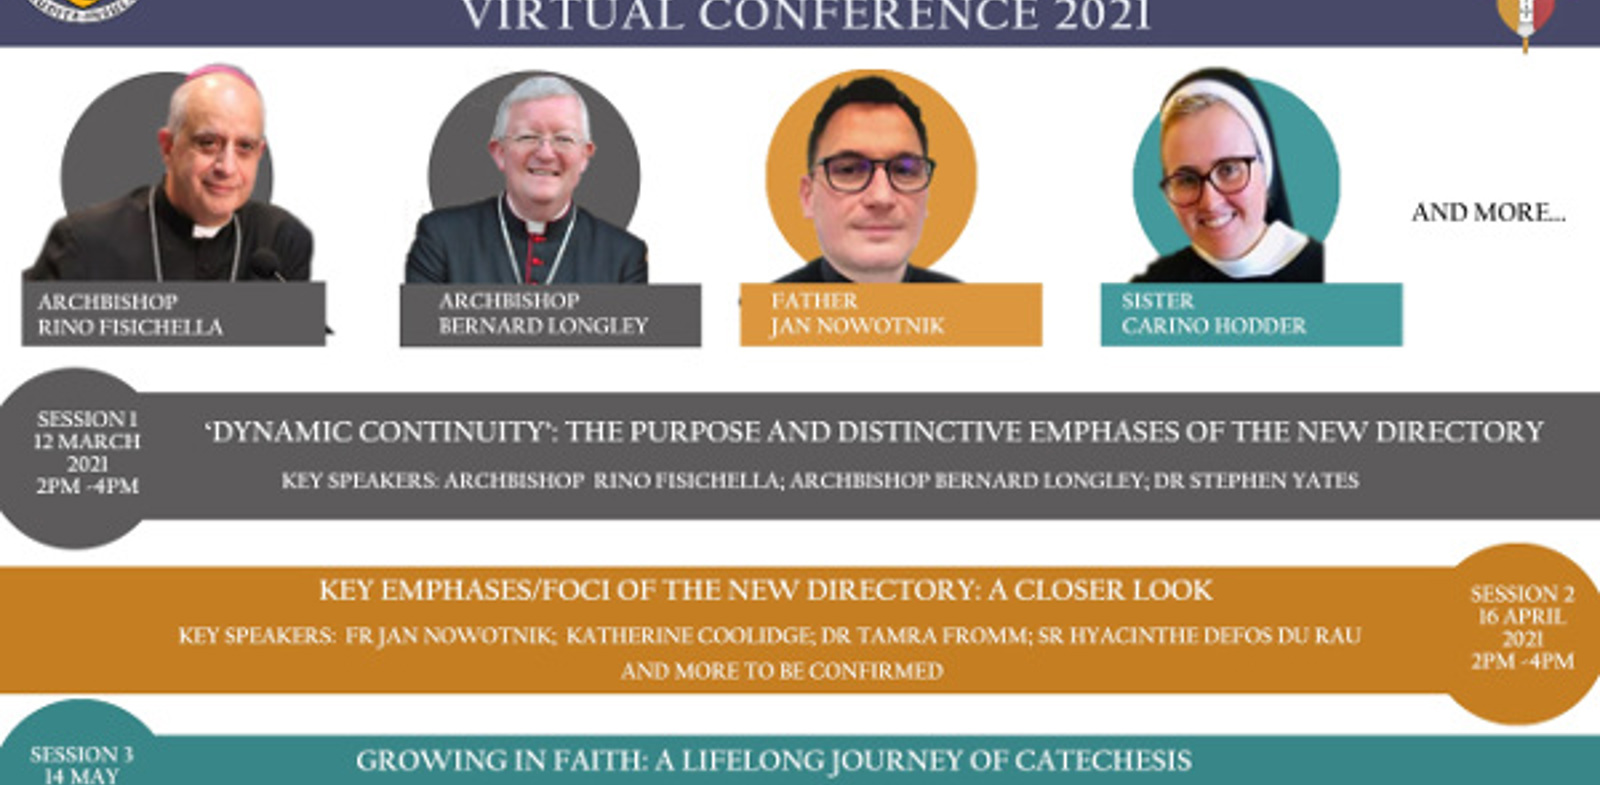 Exploring the Directory for Catechesis Virtual Conference 2021